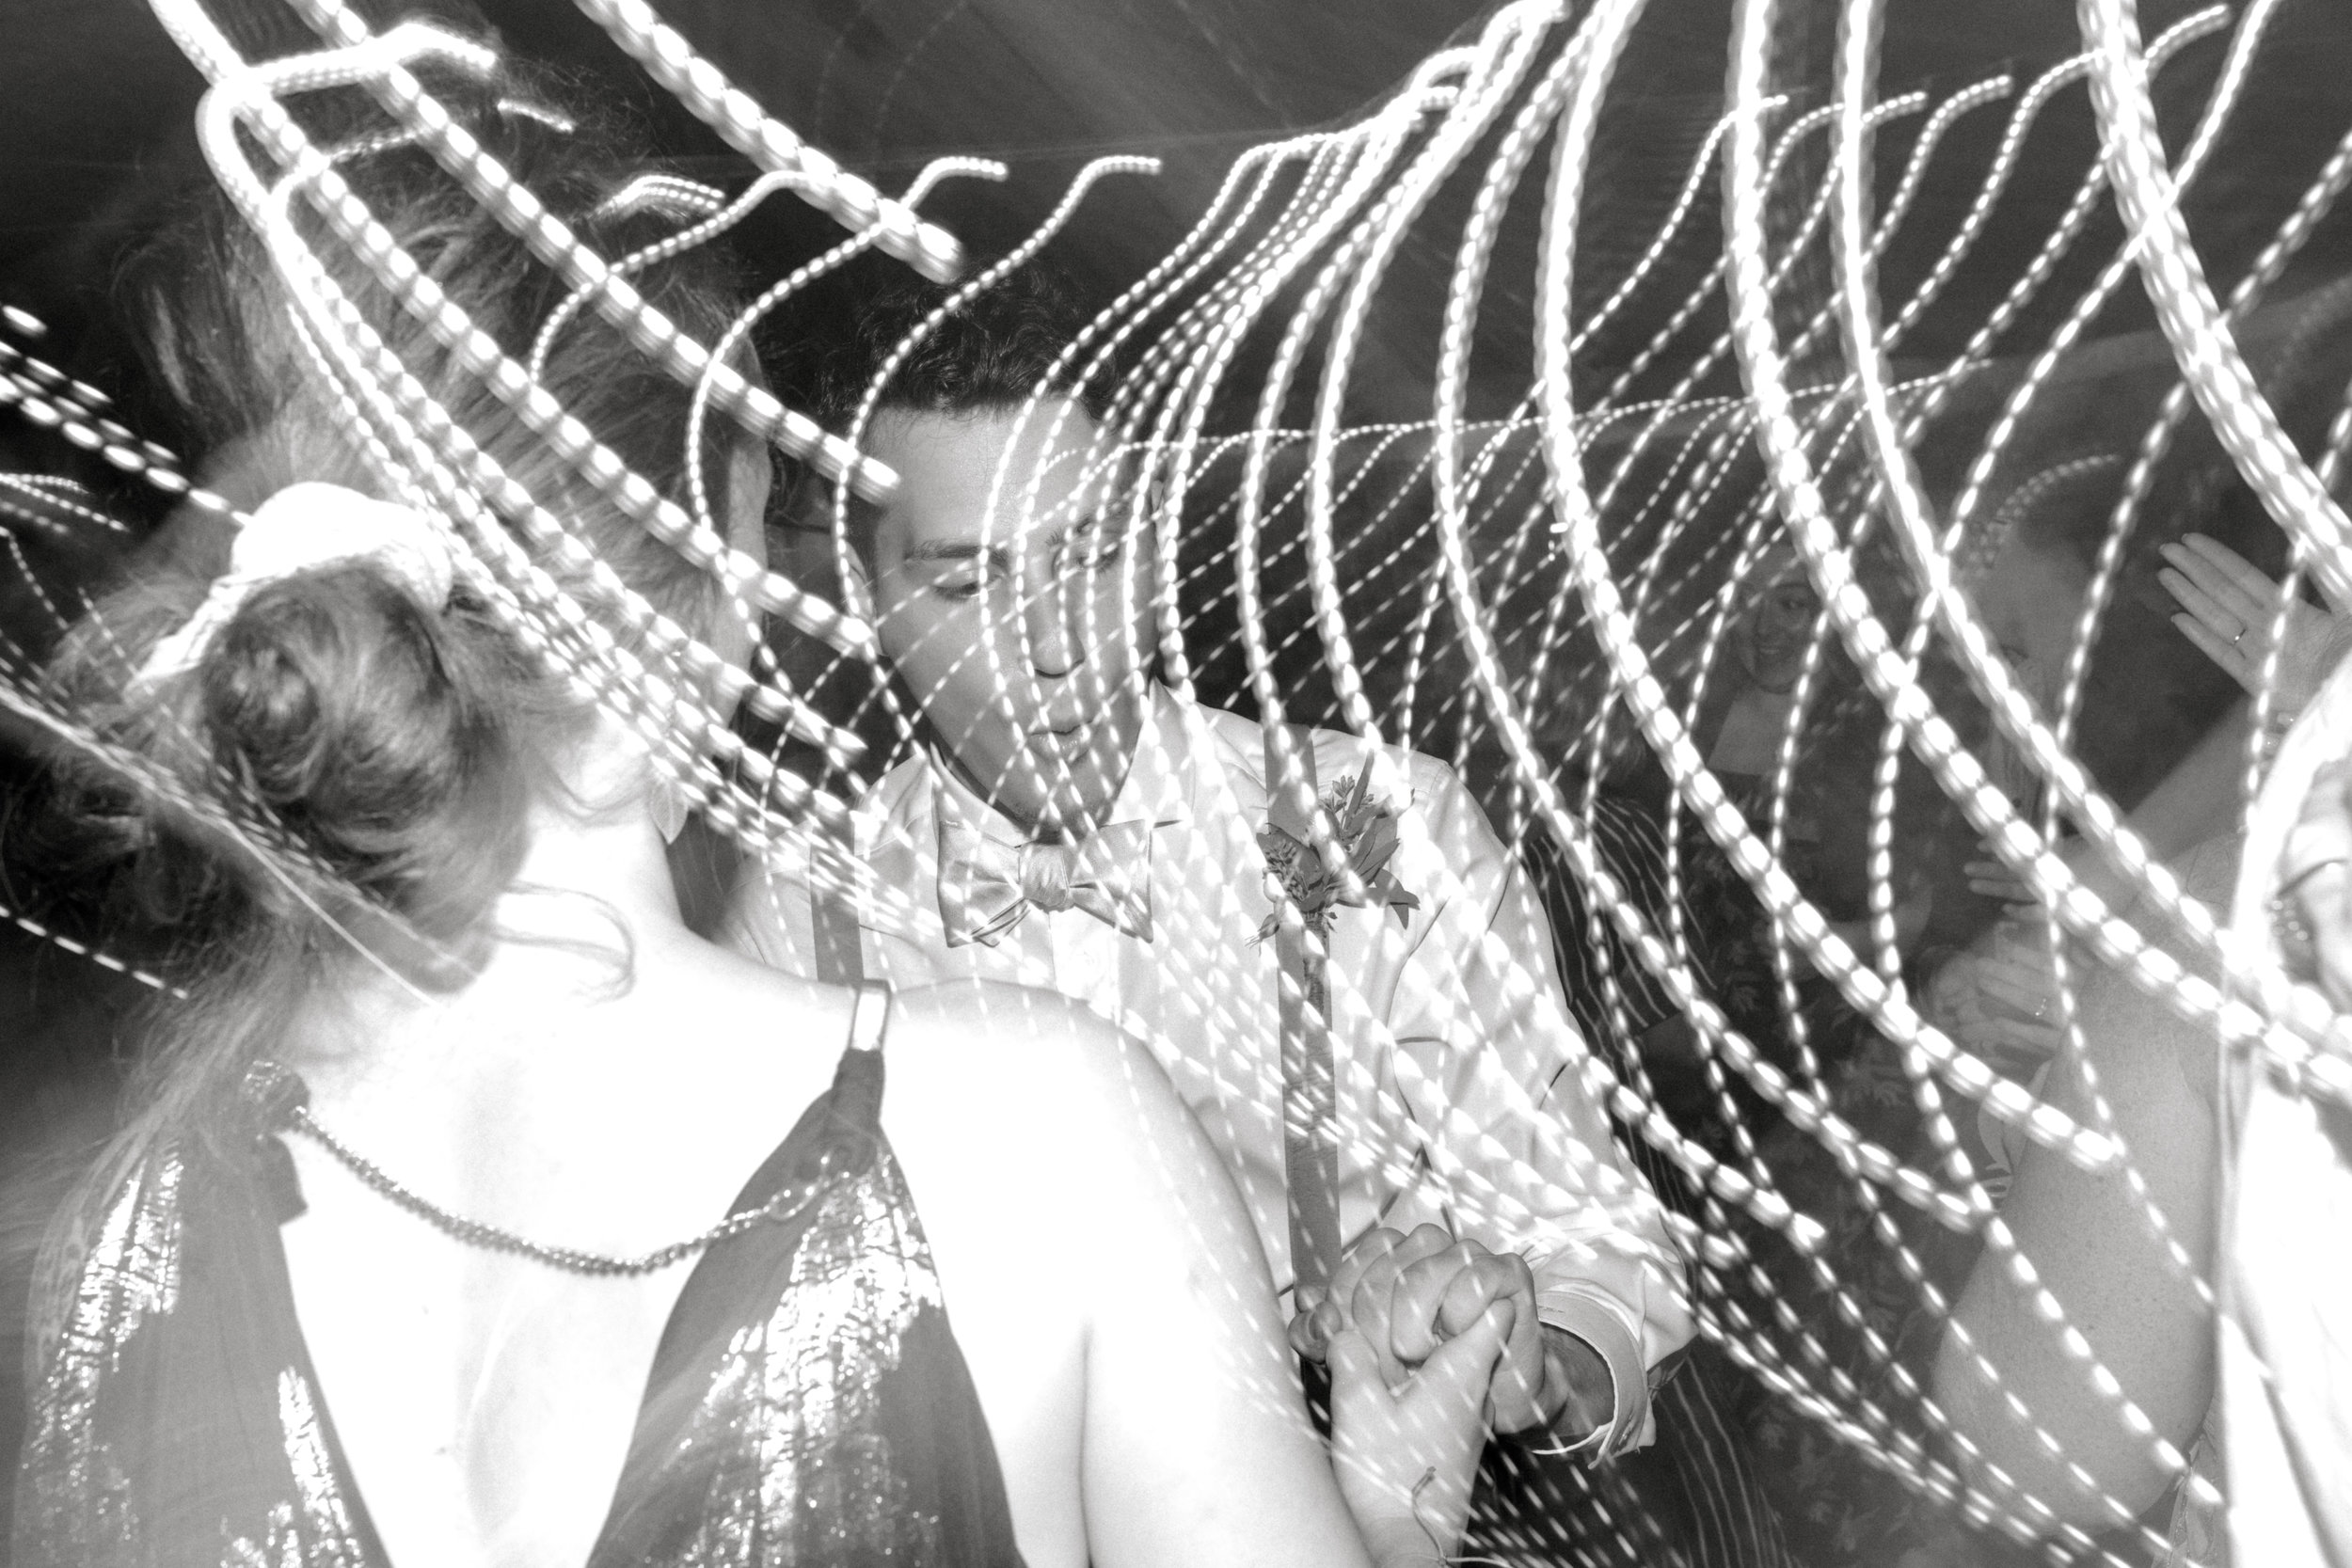 Crazy times as the guests dance the night away at this bright boho chic Tyler Gardens wedding in Bucks County